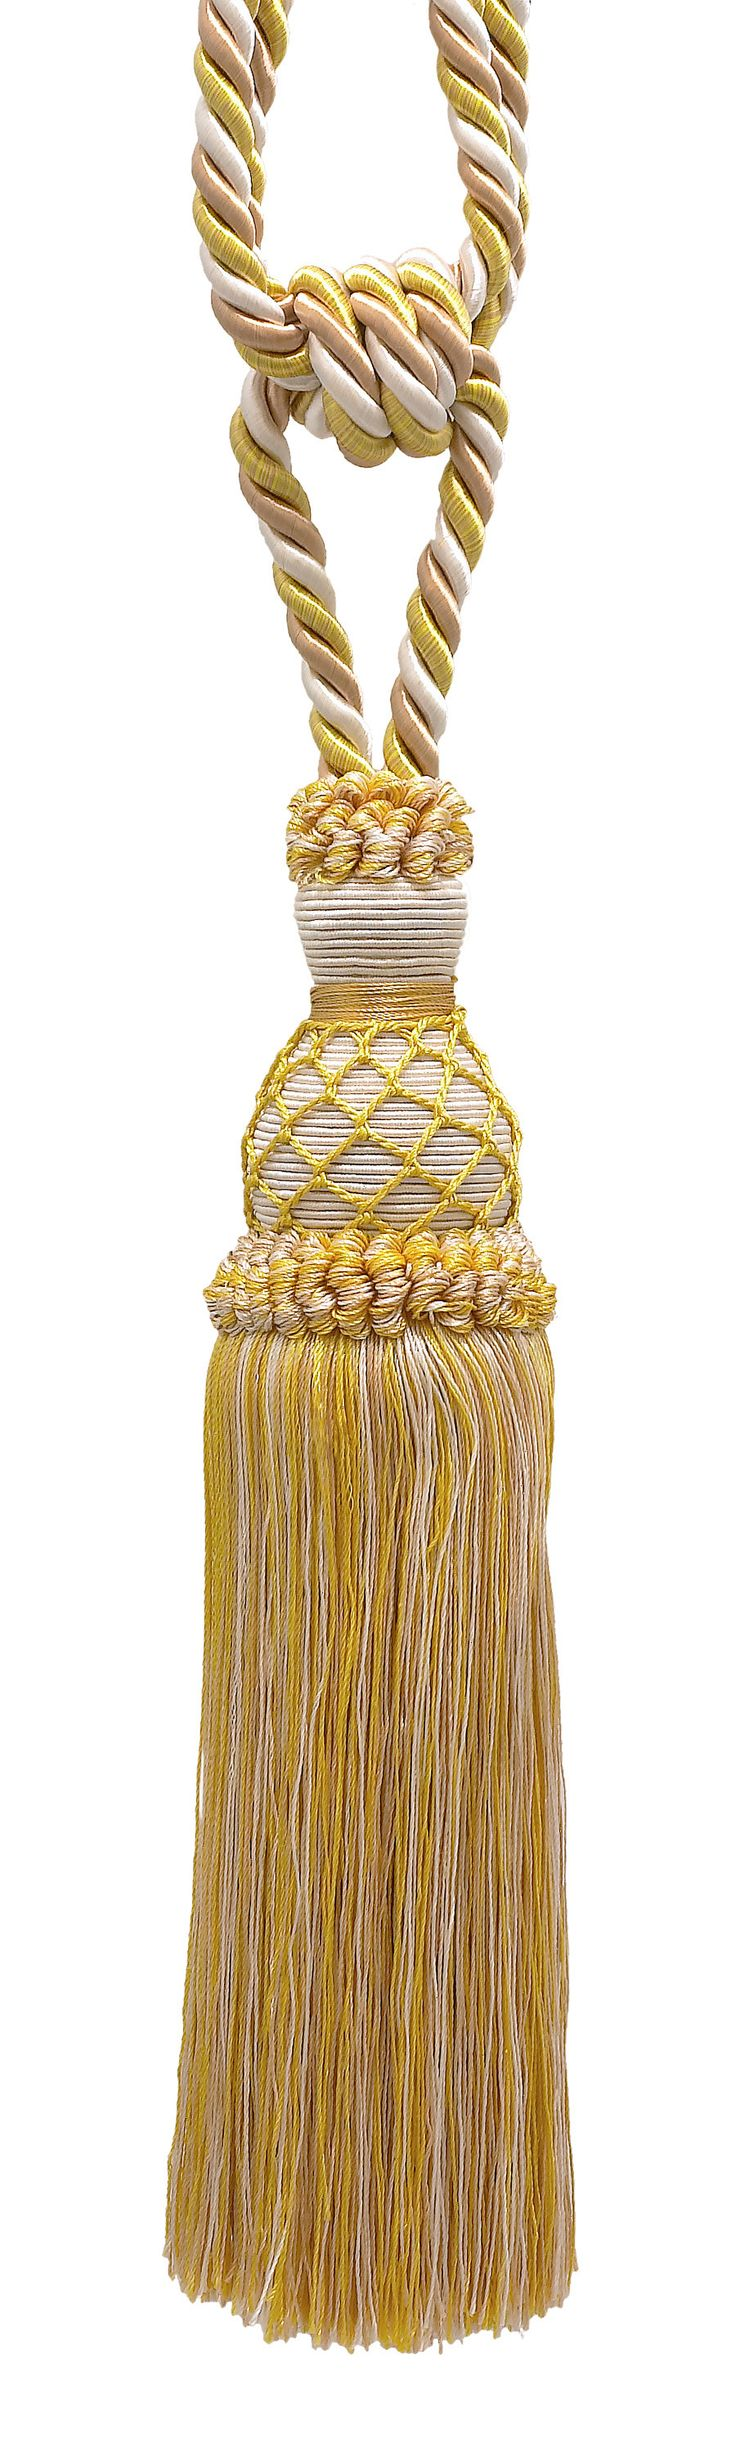 """Elegant Light Gold, Ivory Curtain & Drapery Tassel Tieback / 10"""" tassel, 30 1/2"""" Spread (embrace), 3/8"""" Cord, Imperial II Collection Style# TBIN-1 Color: IVORY GOLD - 2523"""